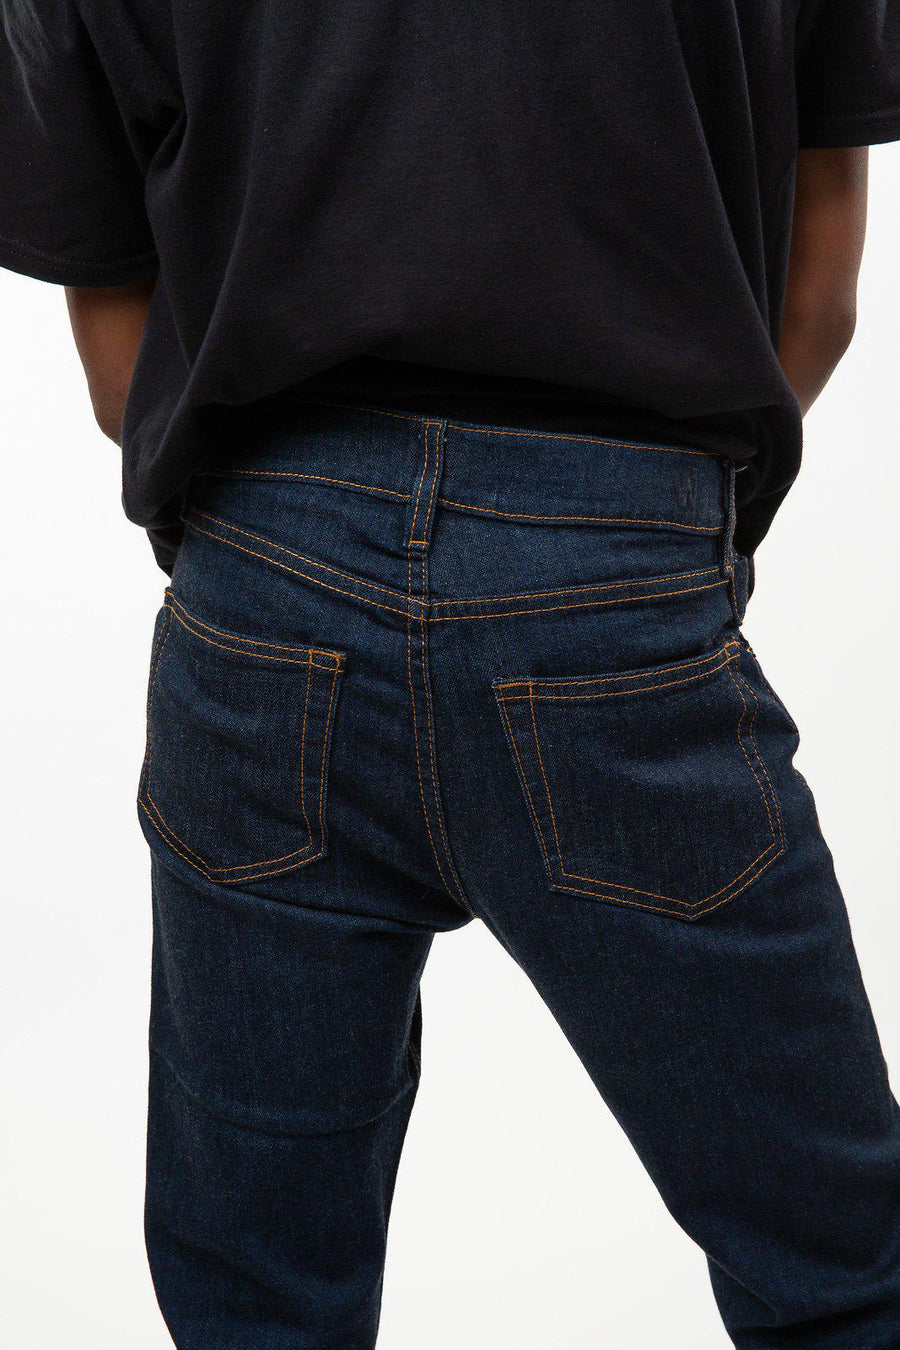 Driggs Ave. Selvedge Denim Jeans